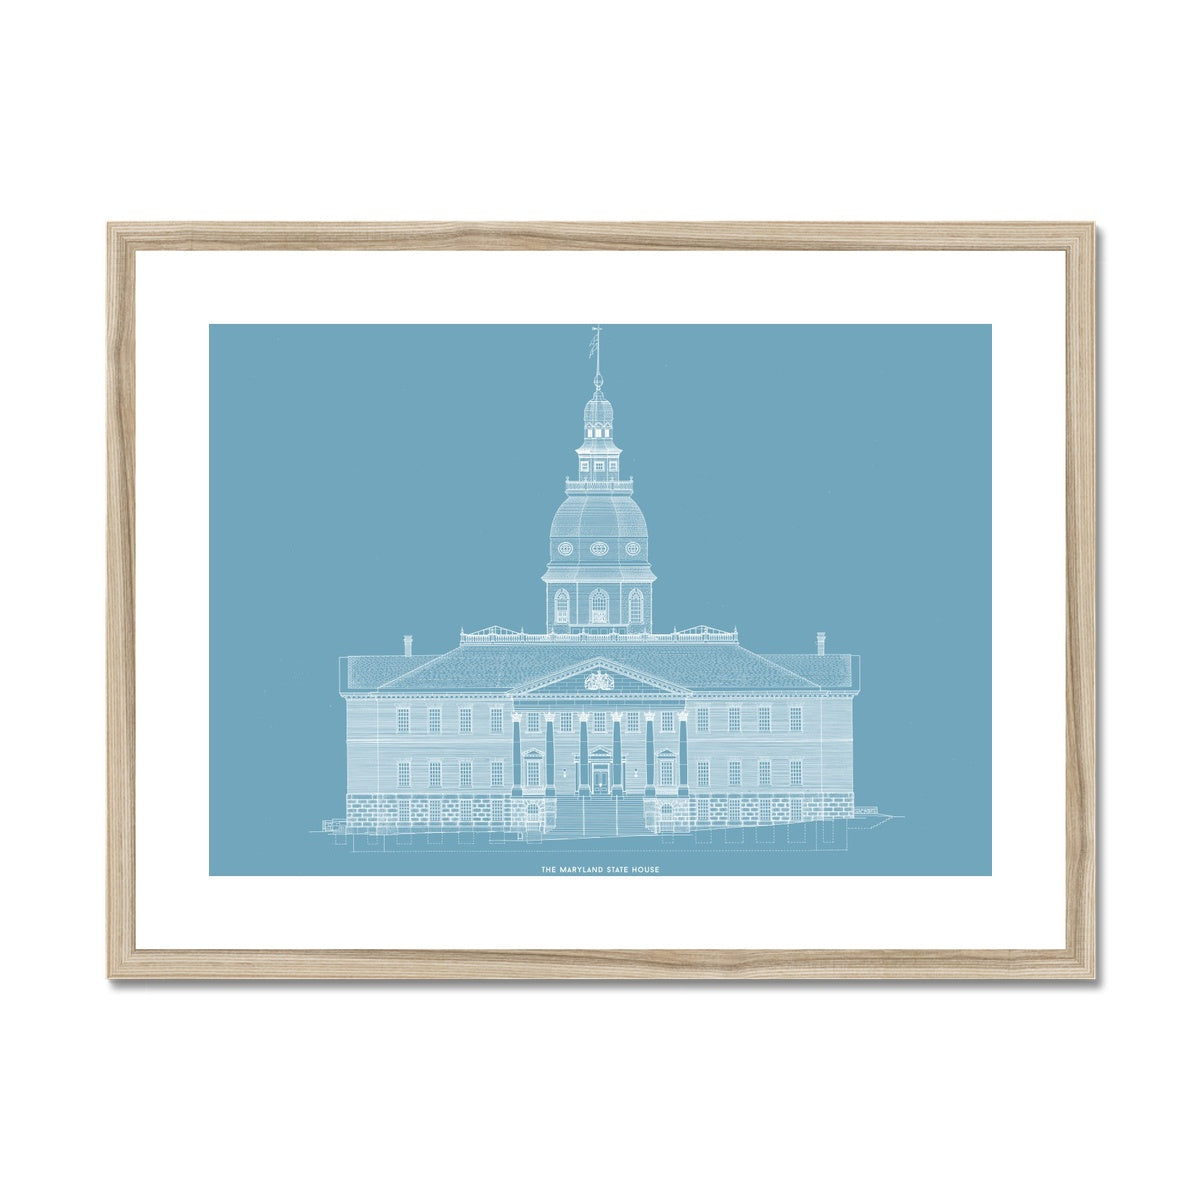 The Maryland State House - Northwest Elevation - Blue -  Framed & Mounted Print